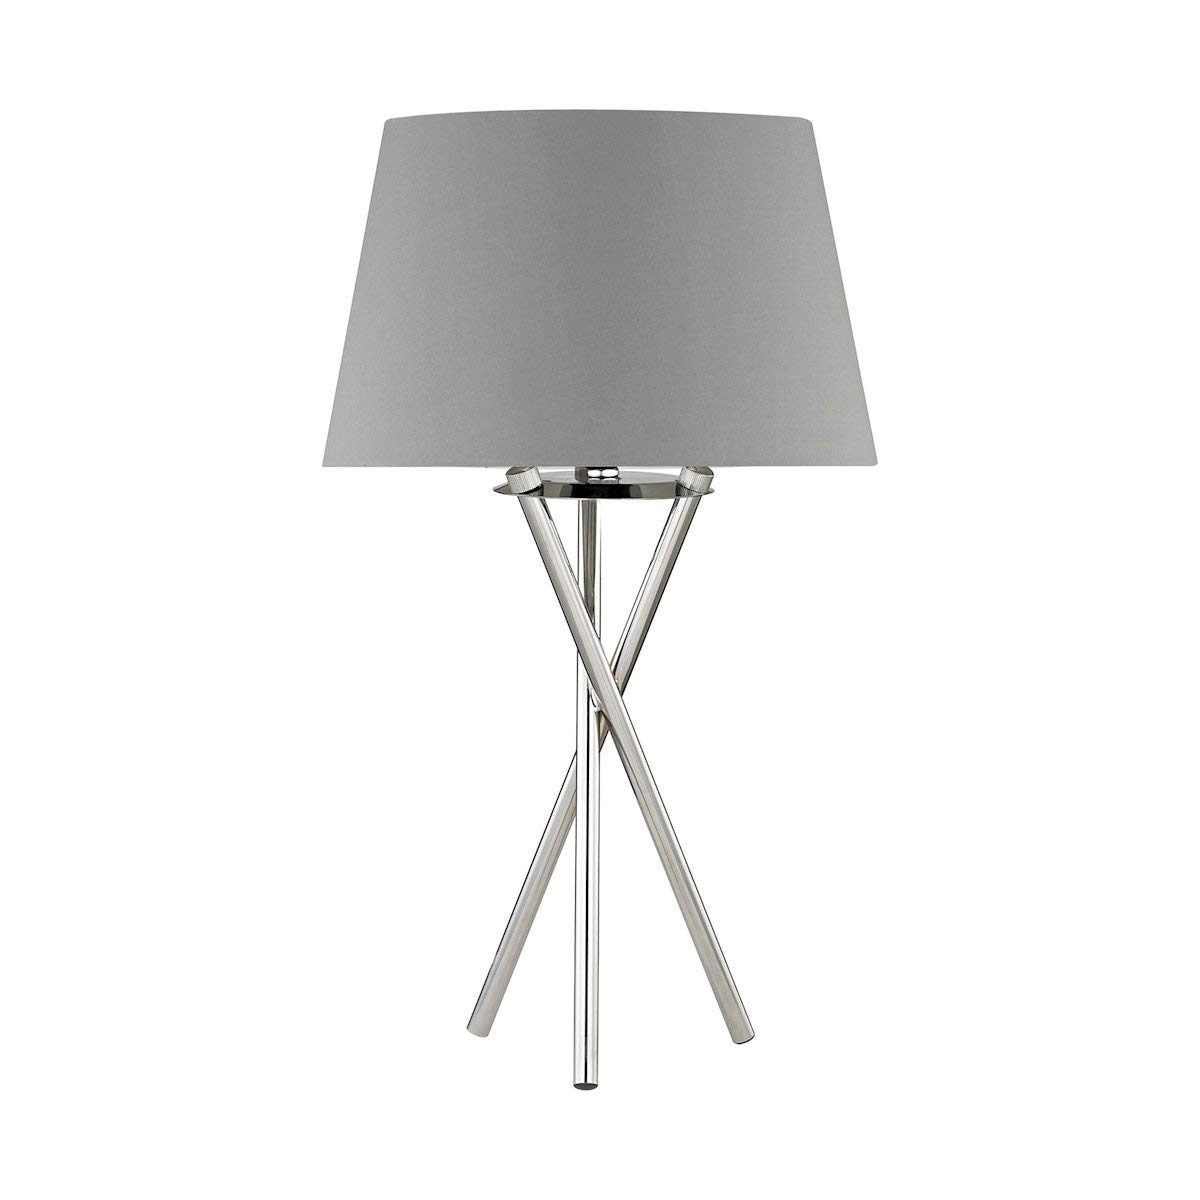 Dimond D3185 Excelsius Table Lamp, 1-Light 60 Watts, Polished Nickel